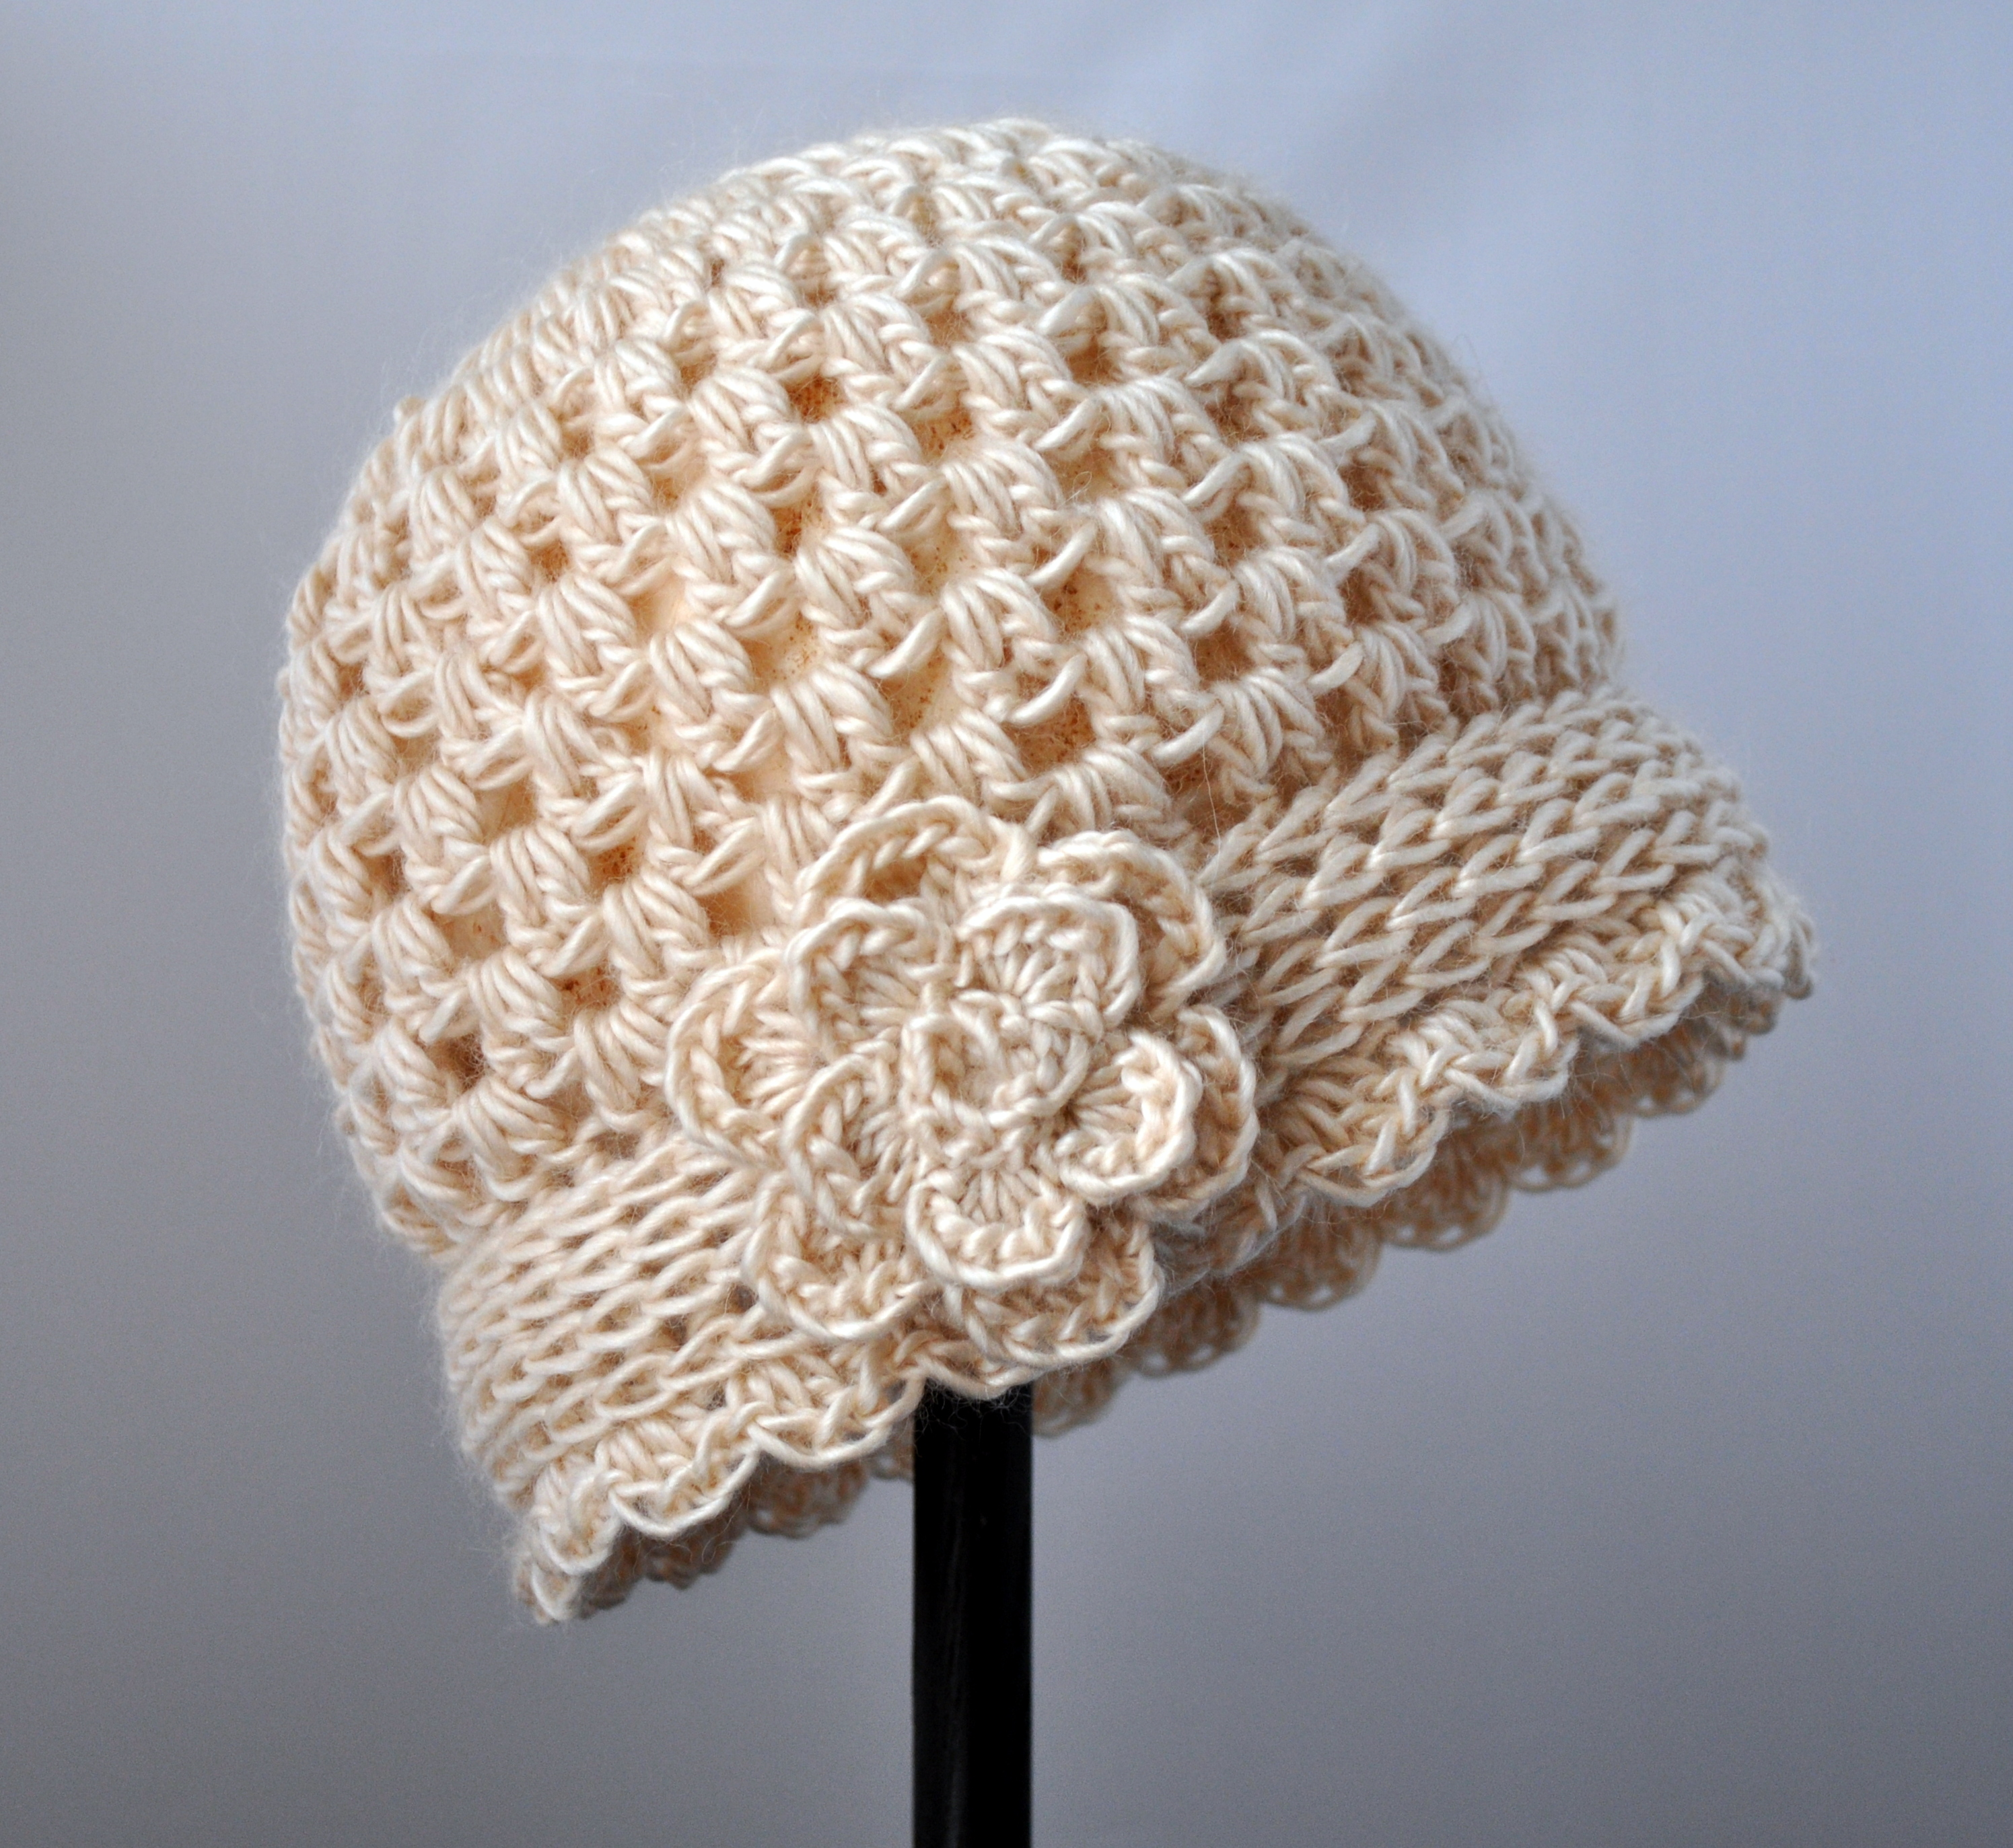 Freepatterns Com Crochet : Crochet Patterns Classy Crochet